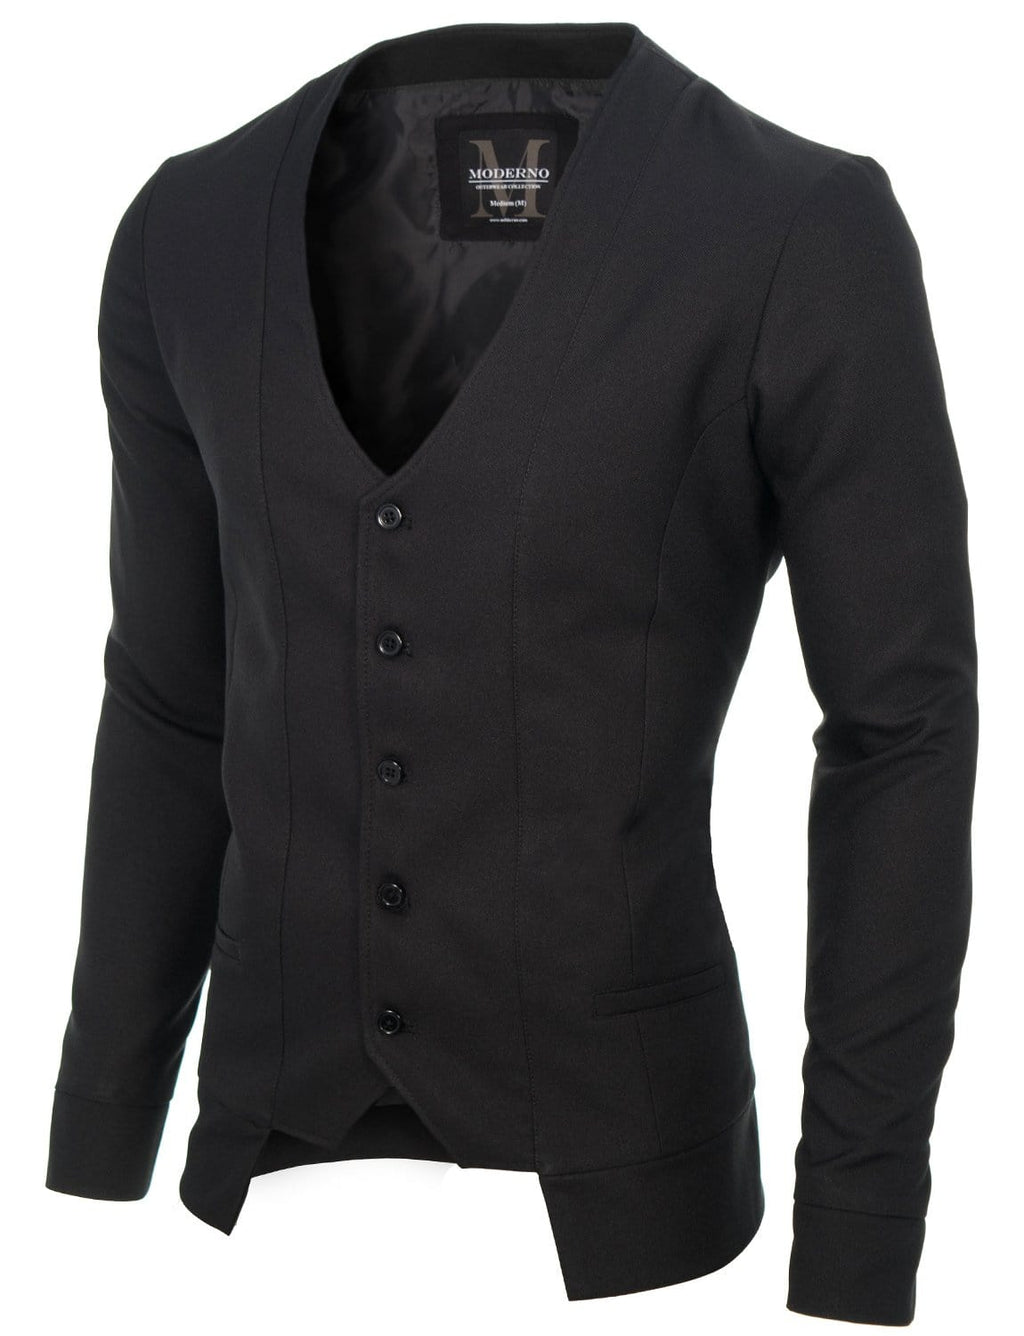 Mens slim fit long sleeve vest cardigan black (MOD16130V)